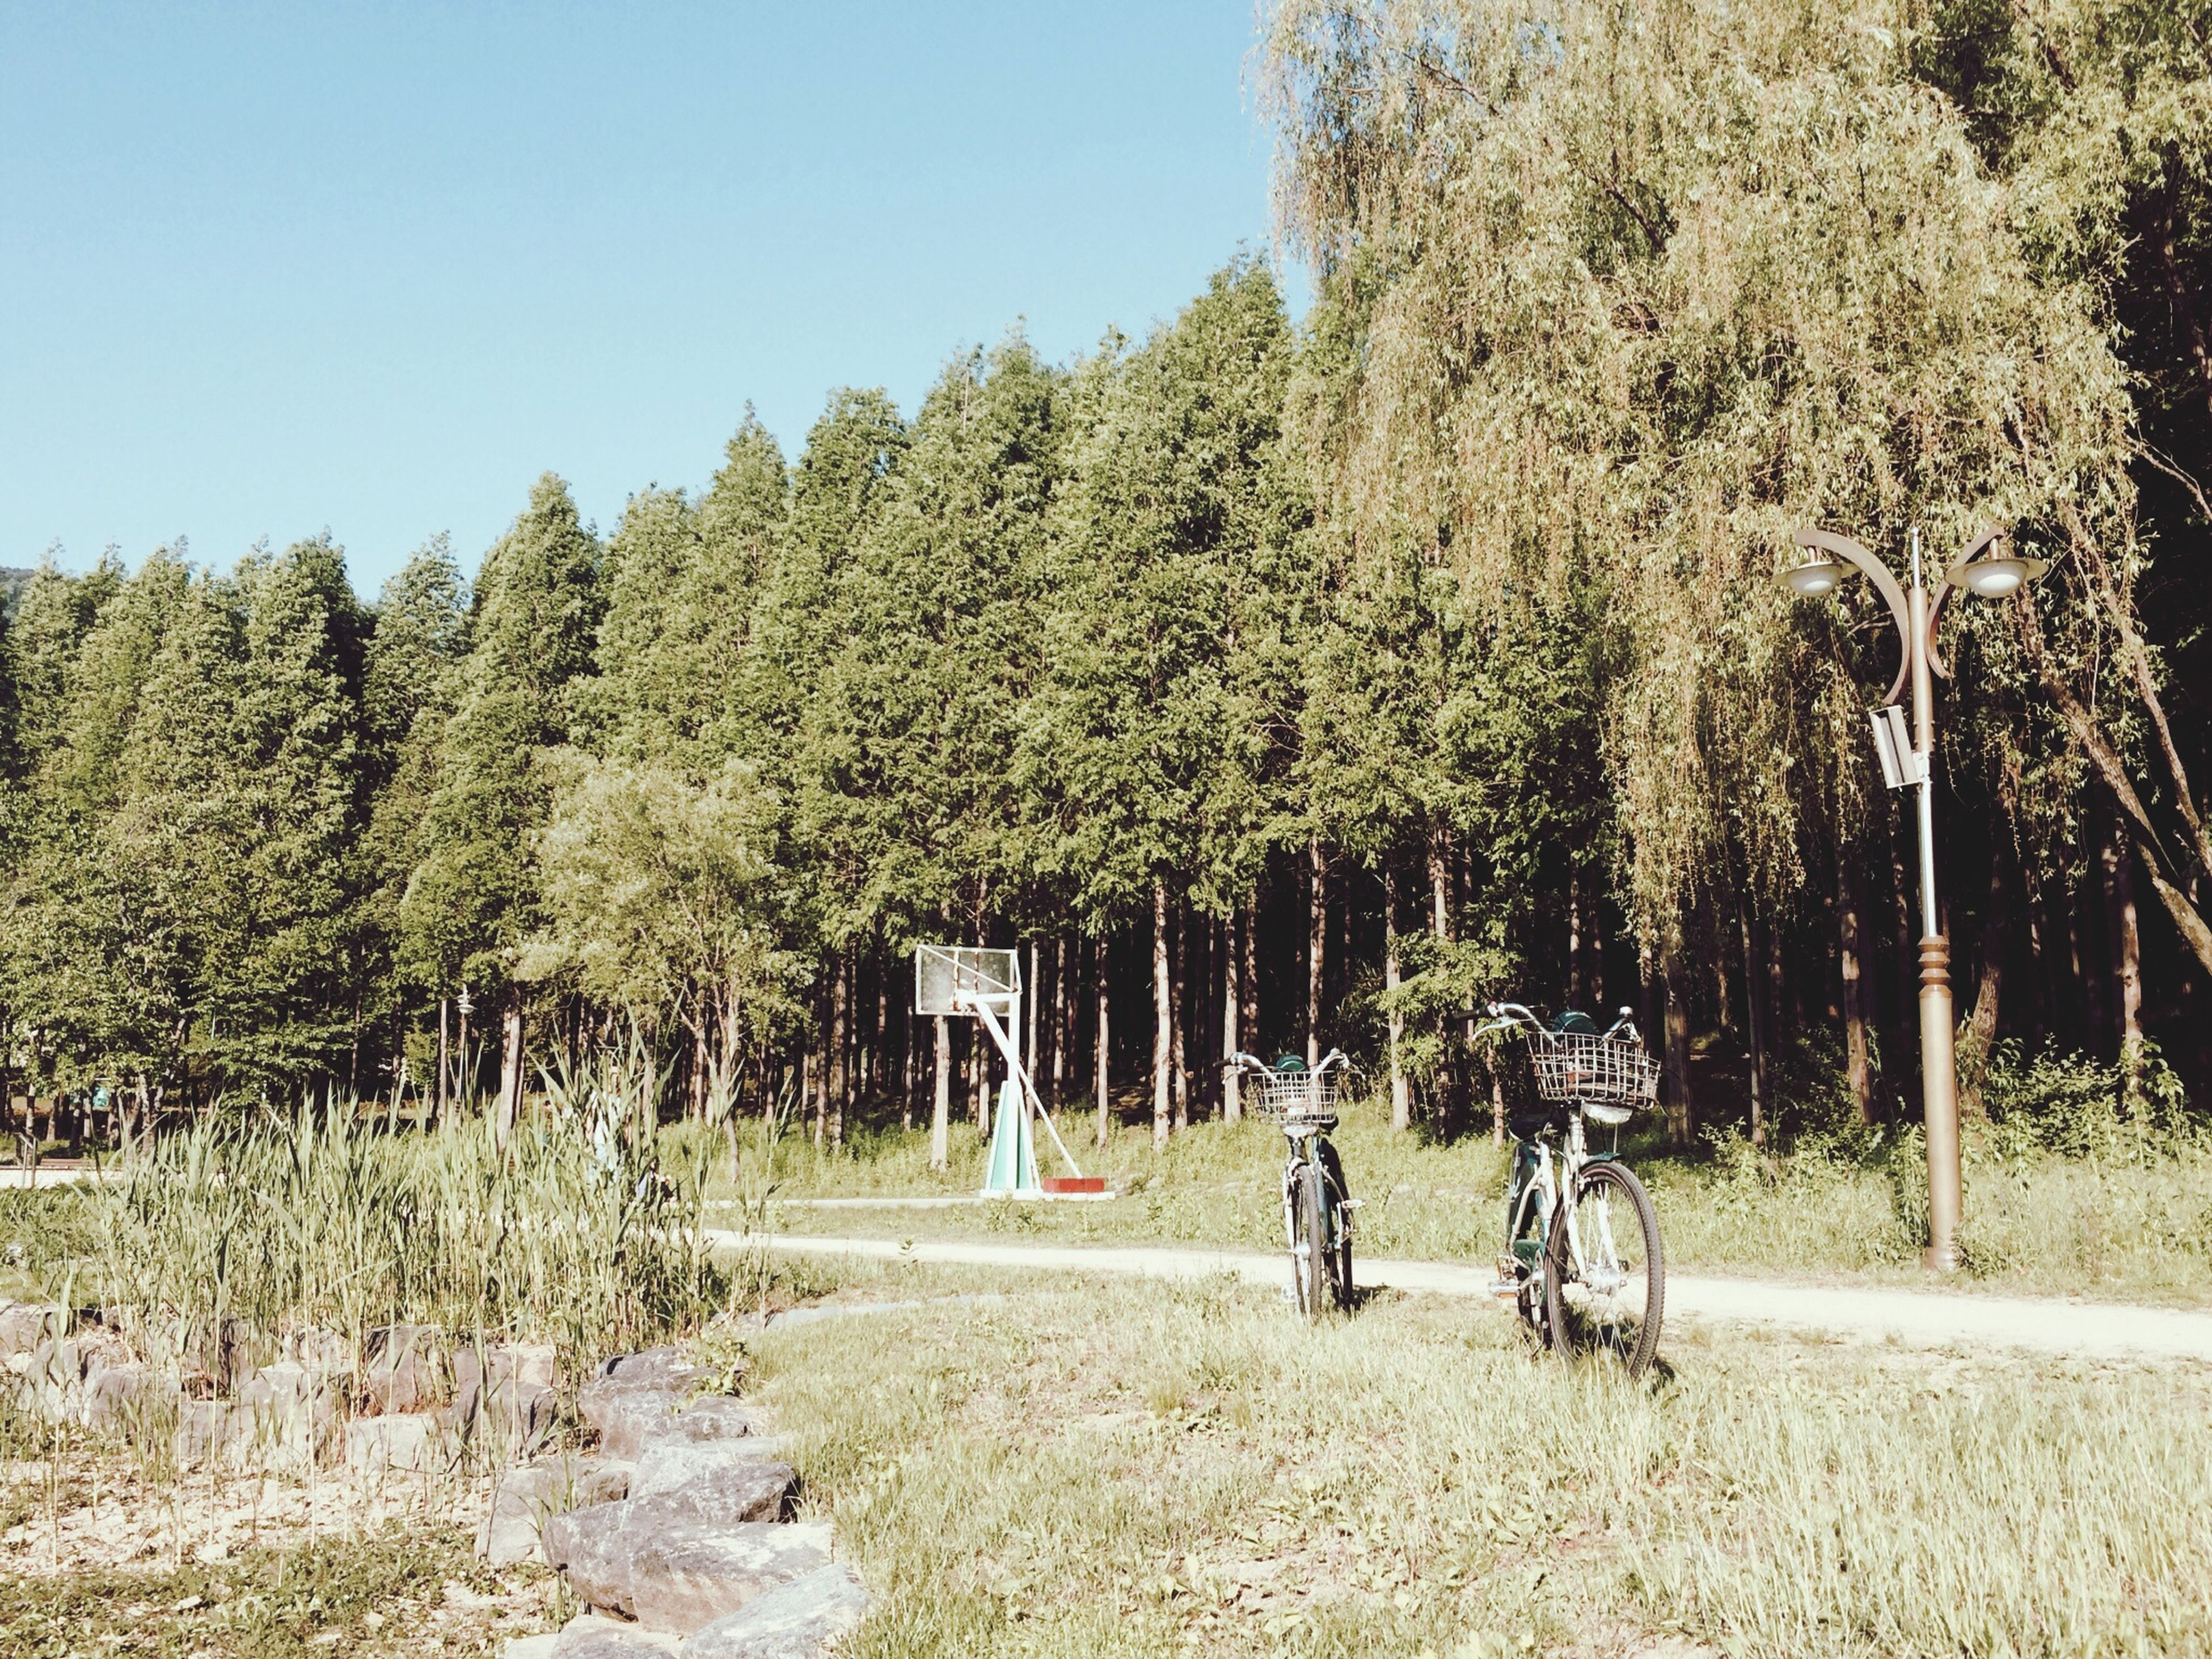 tree, bicycle, transportation, clear sky, mode of transport, land vehicle, growth, nature, men, day, leisure activity, landscape, field, road, lifestyles, outdoors, full length, sunlight, sky